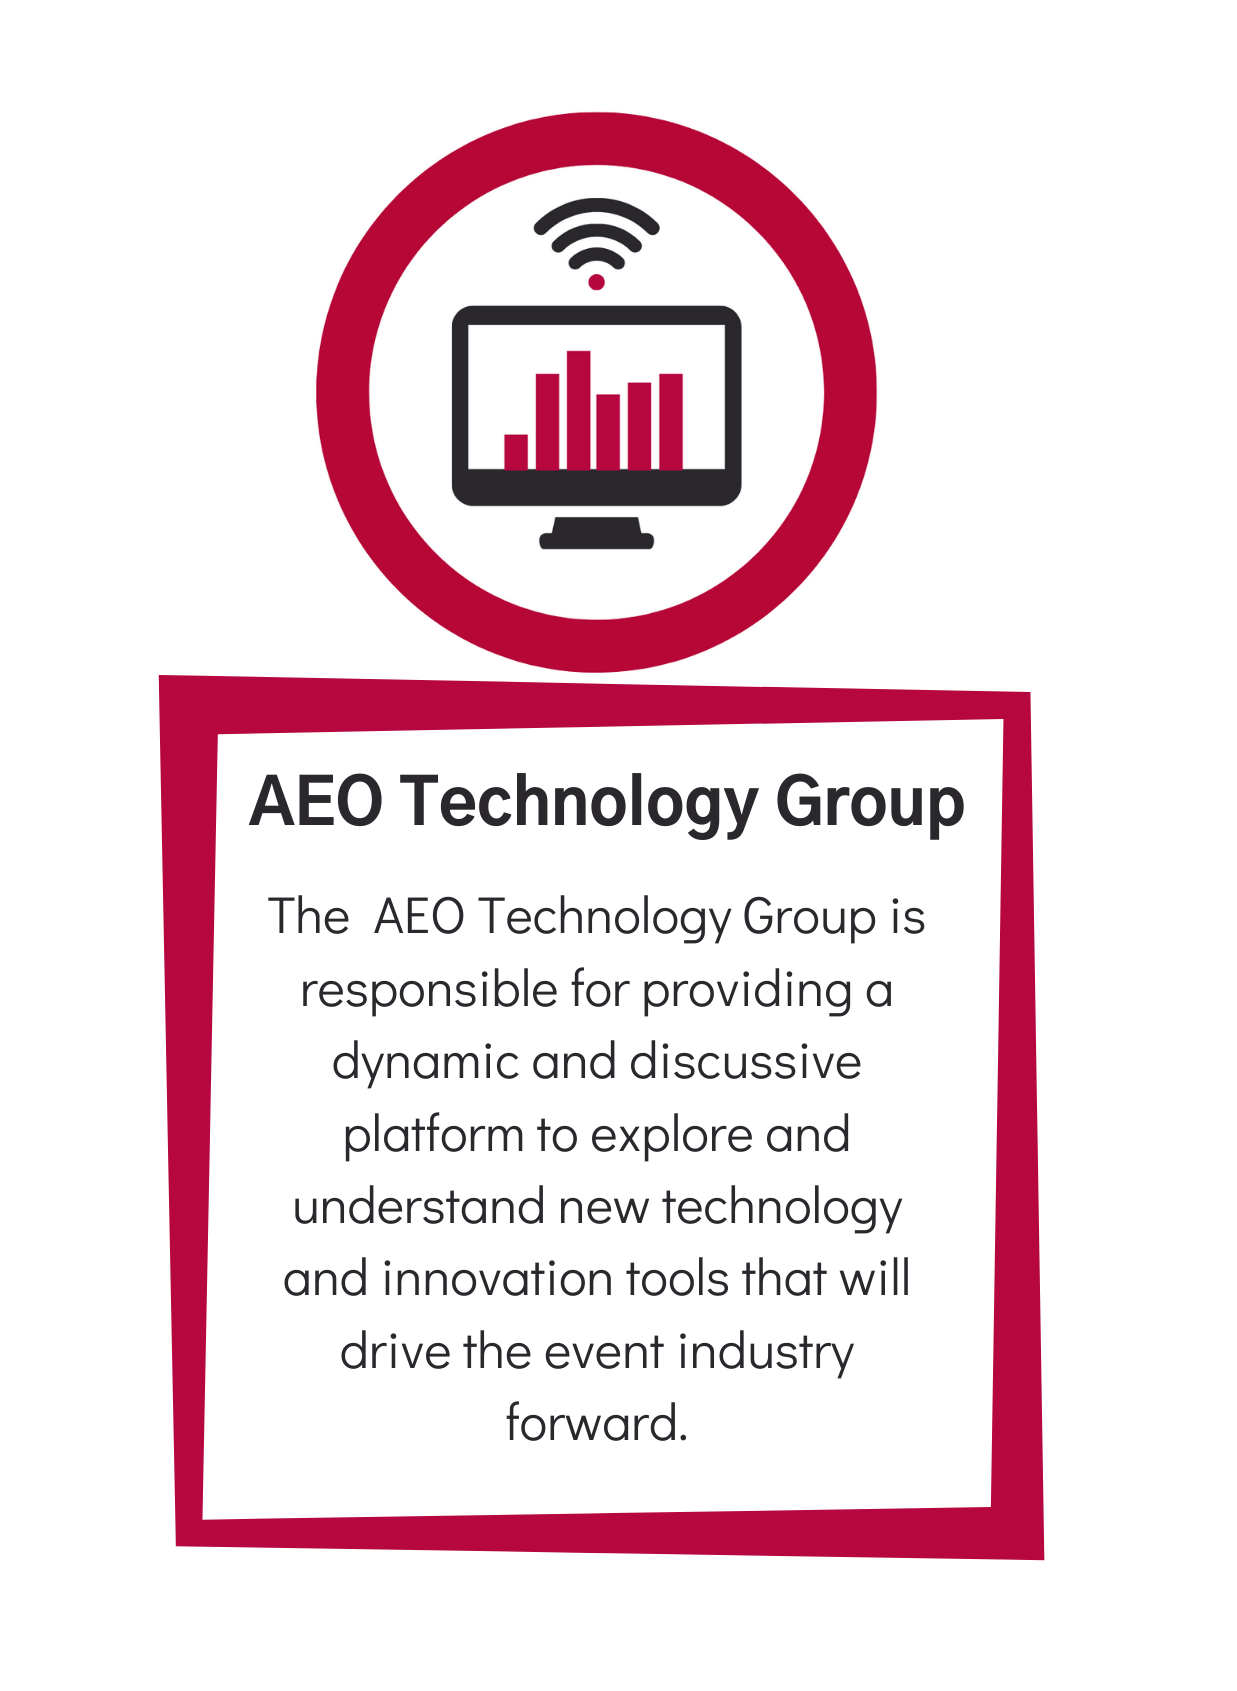 AEO Tech Group